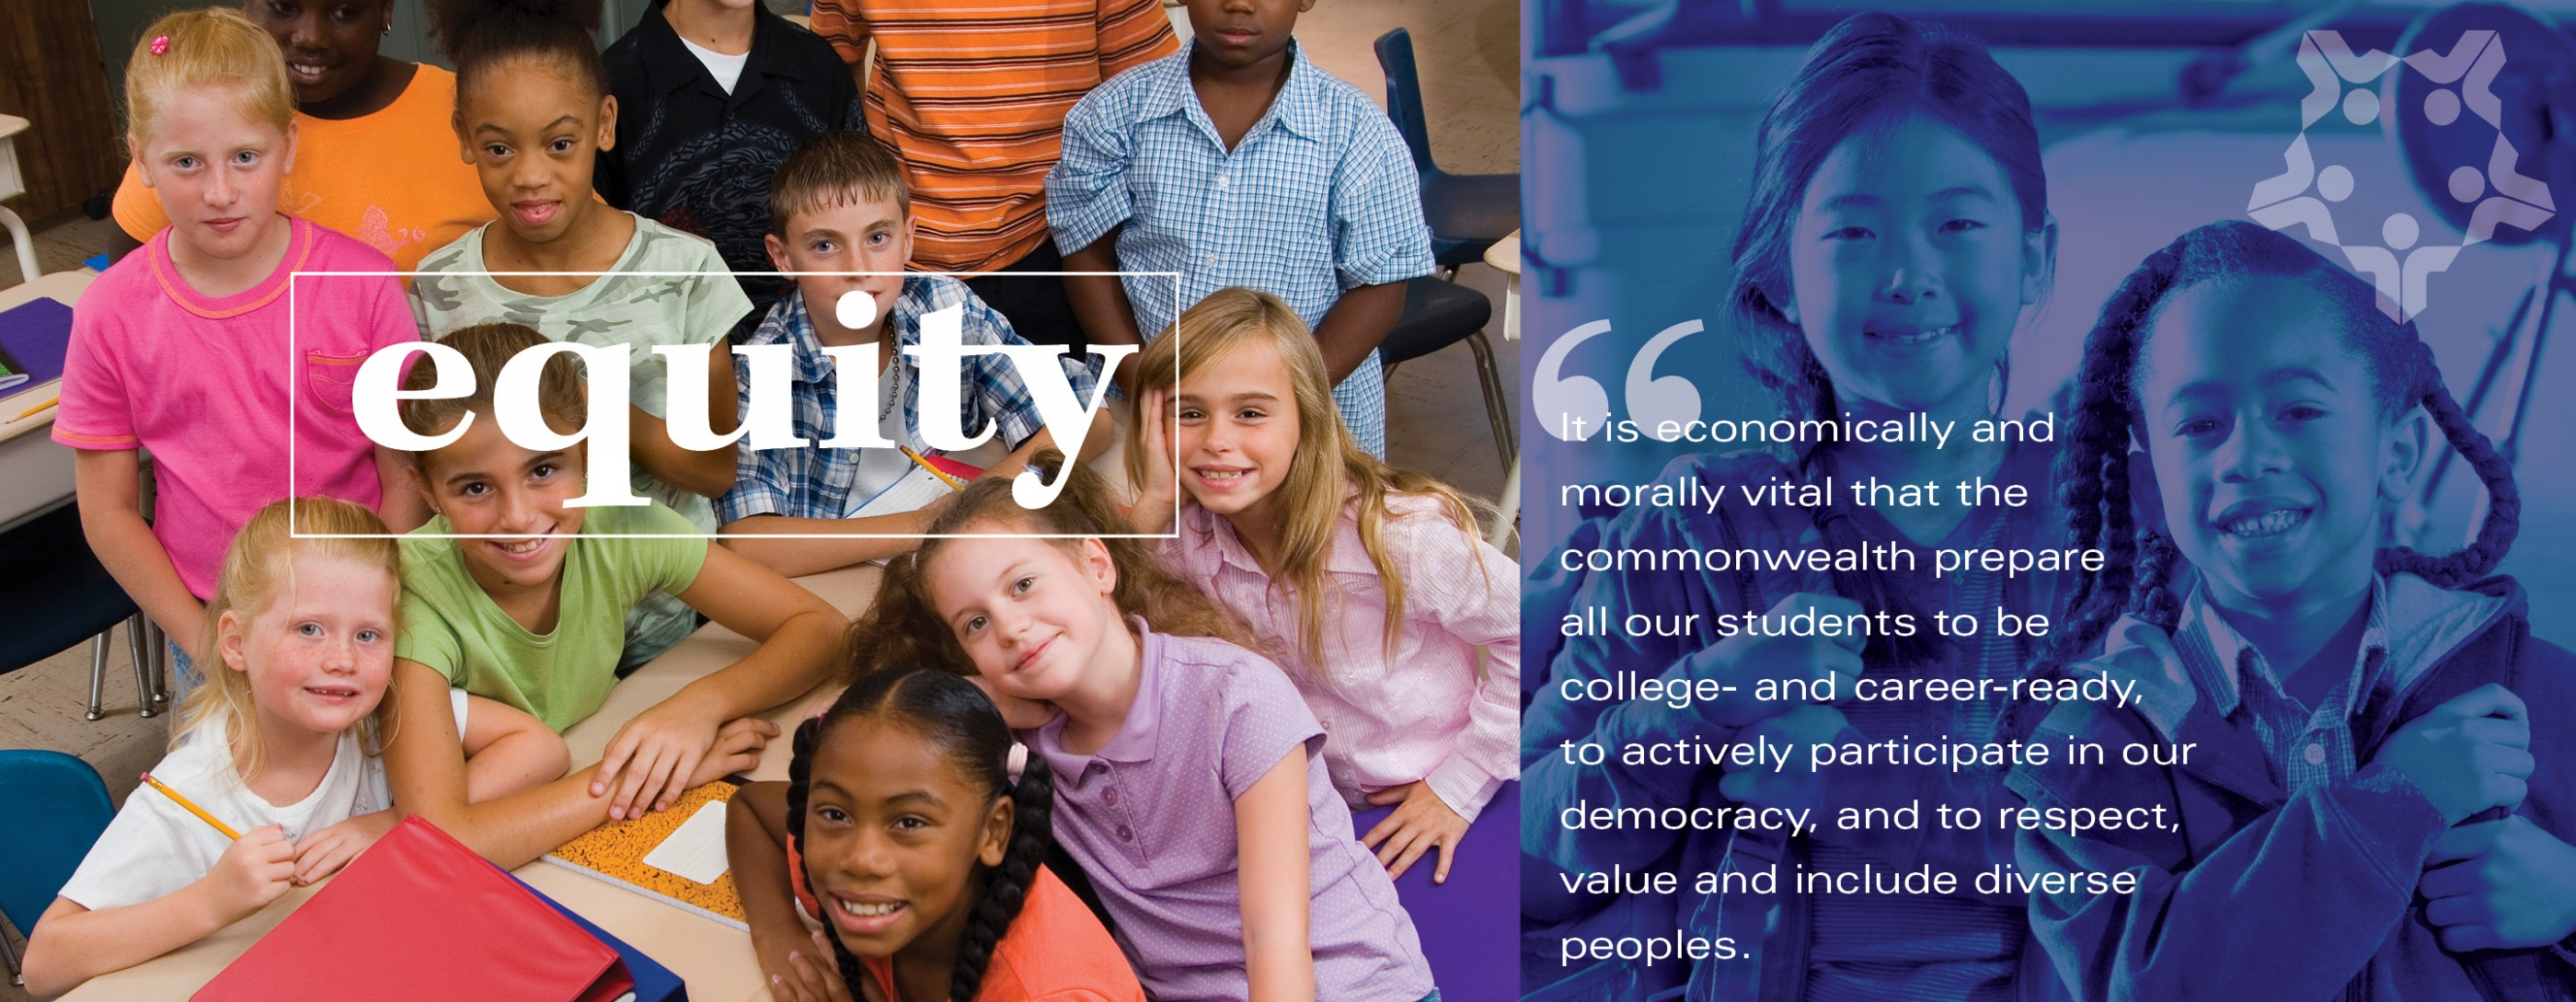 Learn more about PSBA's Equity initiatives